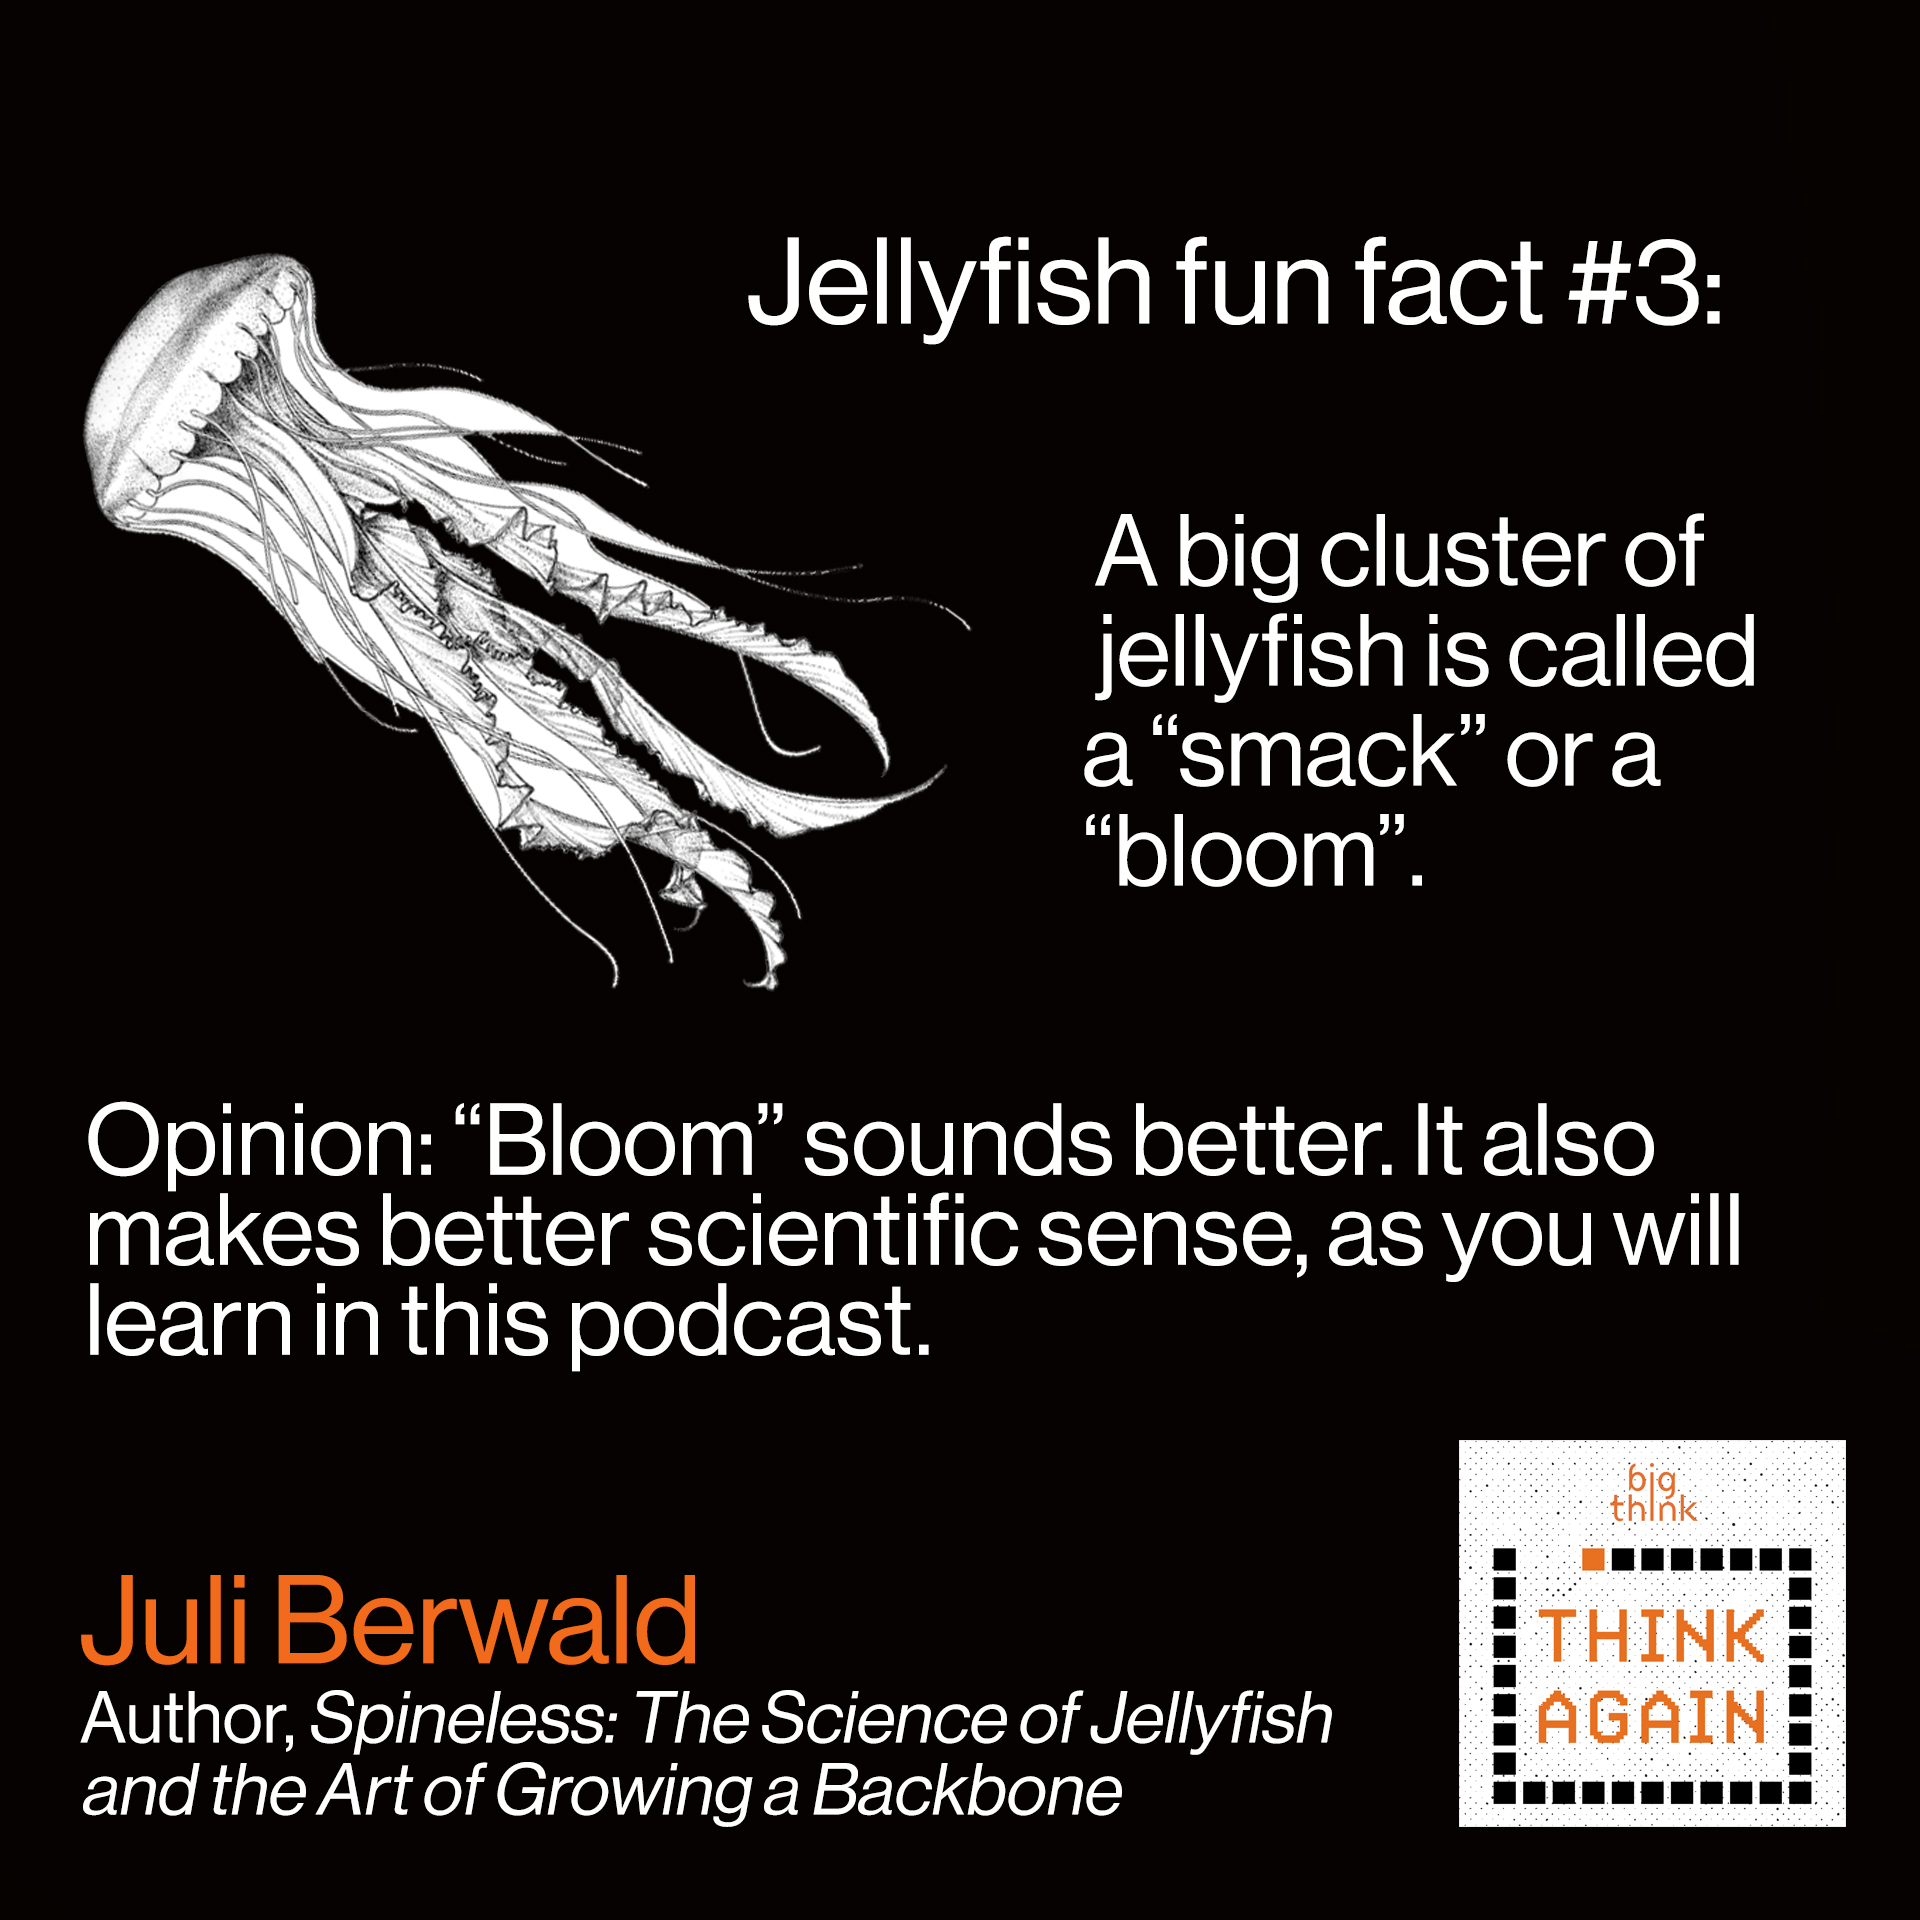 "Jellyfish fun fact #3: A big cluster of  jellyfish is called a ""smack"" or a ""bloom"".   Opinion: Bloom sounds better."